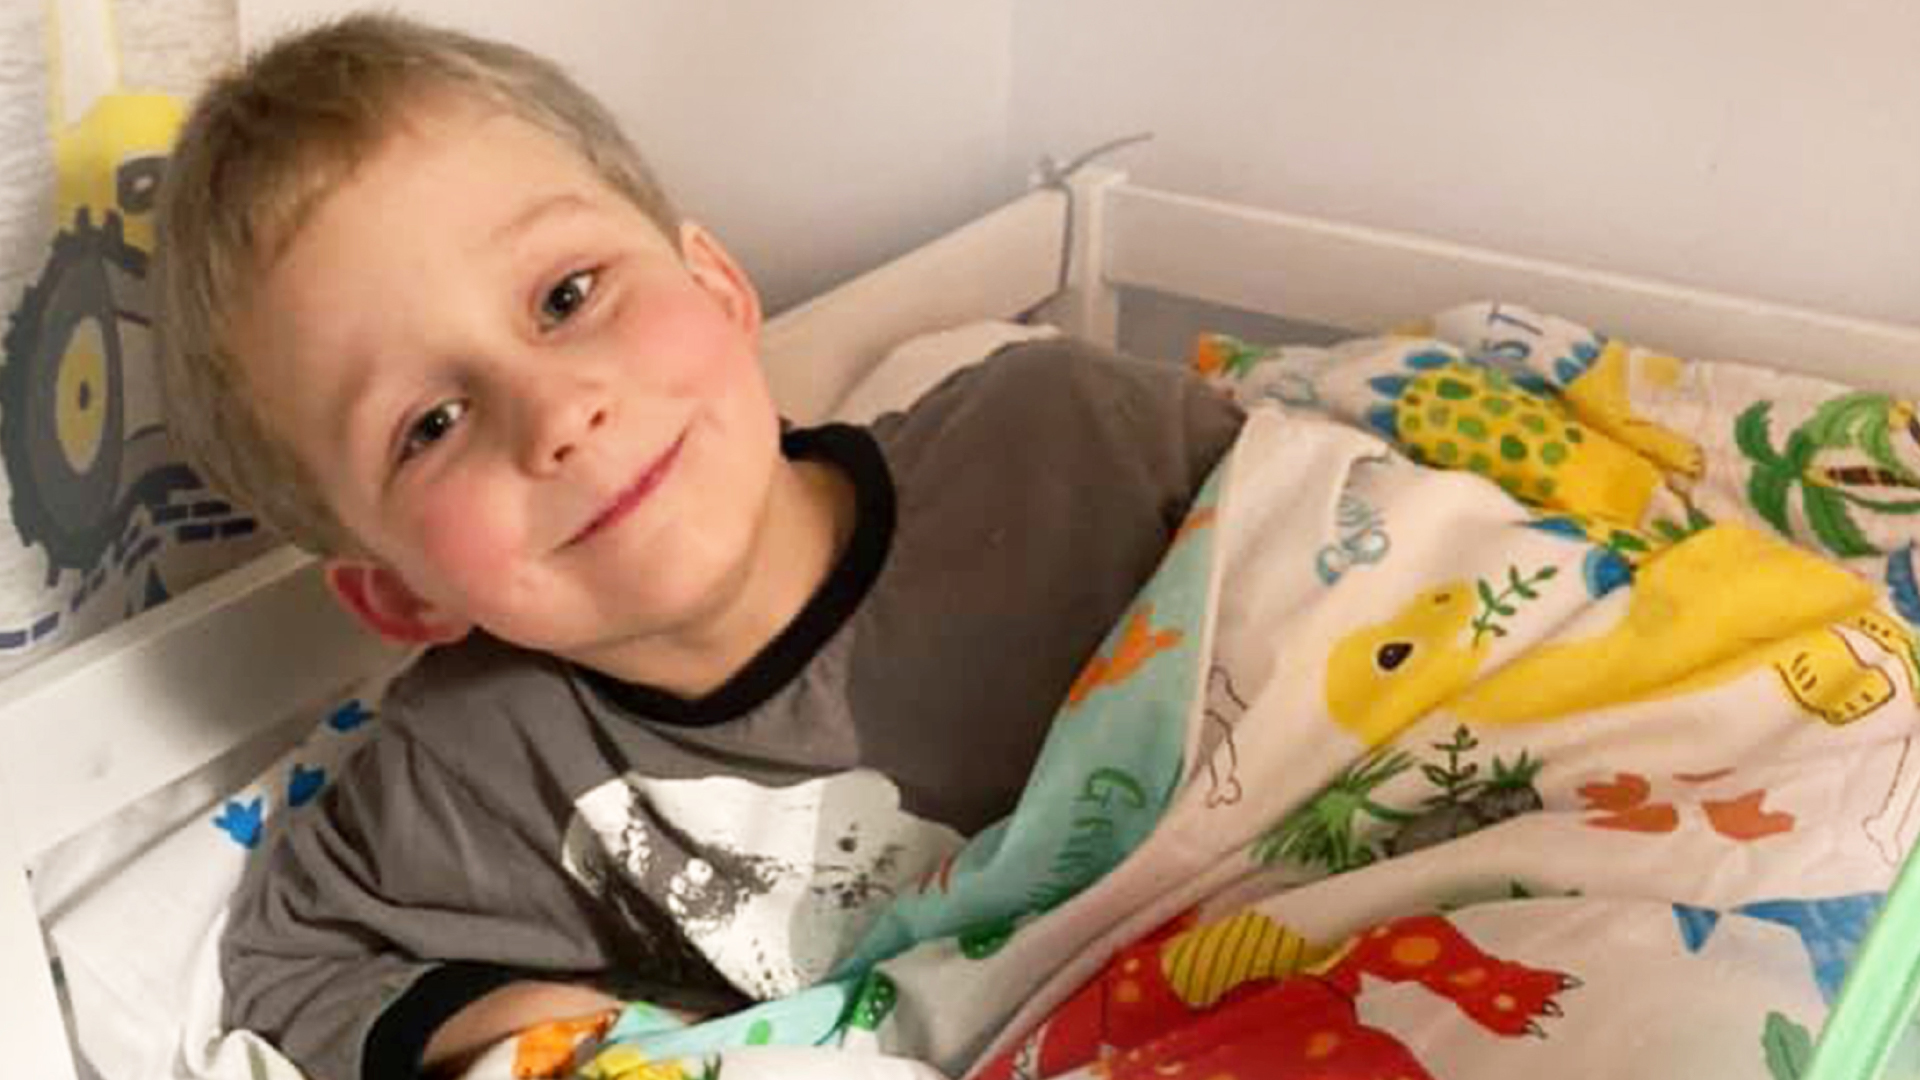 5 ways to change your child's bedroom for better sleep.